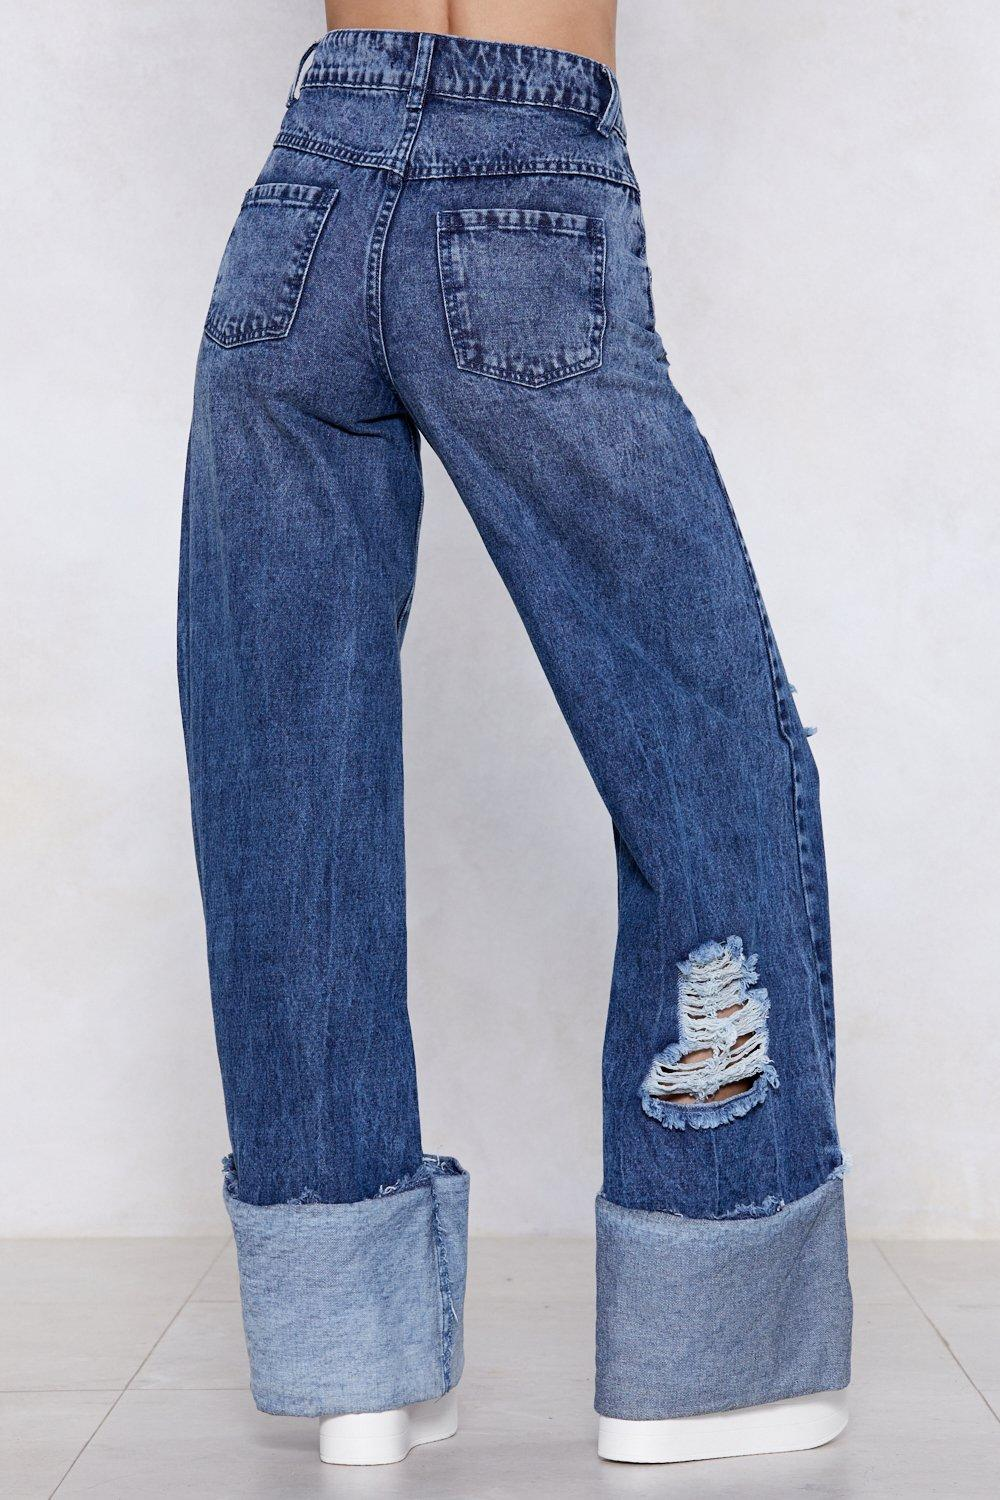 93d0c8f4e Smells Like Teen Spirit Wide-Leg Jeans | Shop Clothes at Nasty Gal!